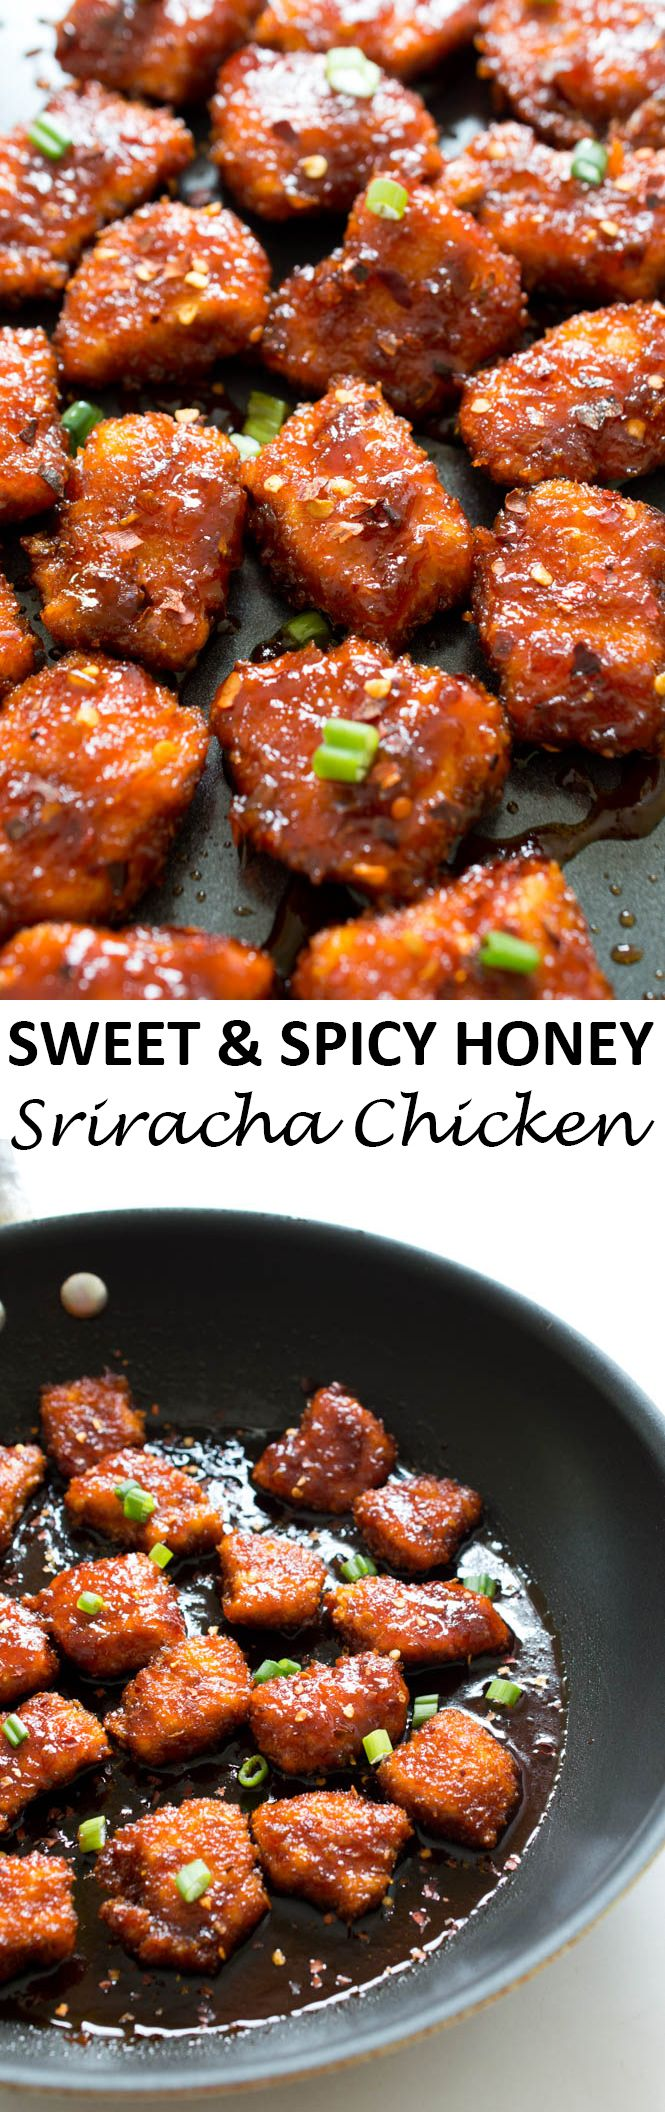 Sweet and Spicy Baked Honey Sriracha Chicken. Takes less than 30 minutes to make and is so much better than take-out! #maincourse #recipes #dinner #recipe #easy